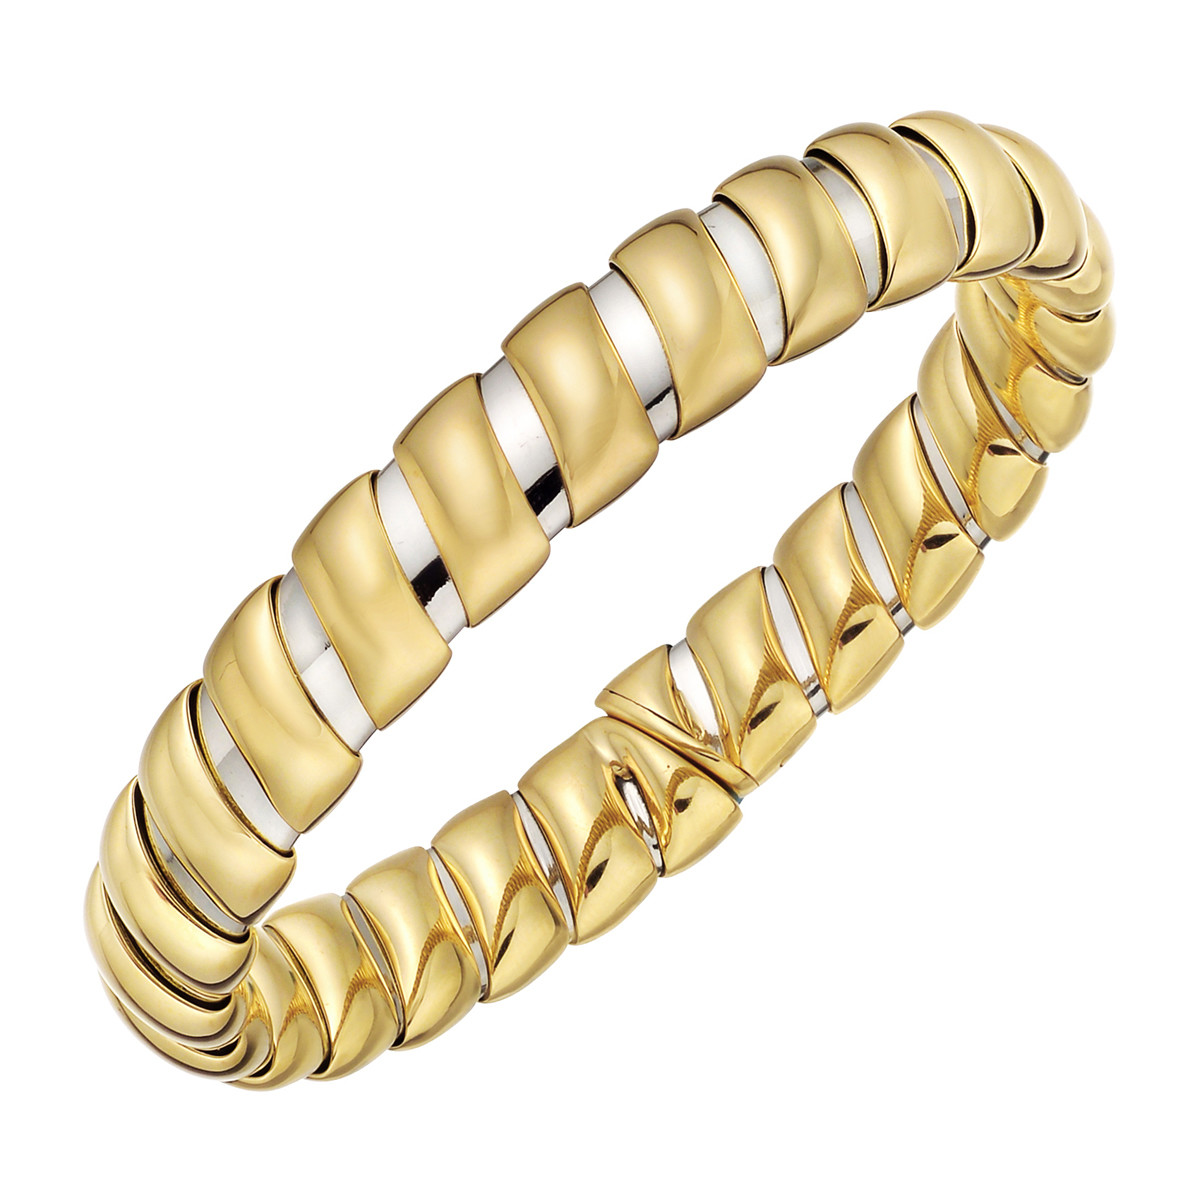 18k Yellow Gold & Steel Cuff Bracelet